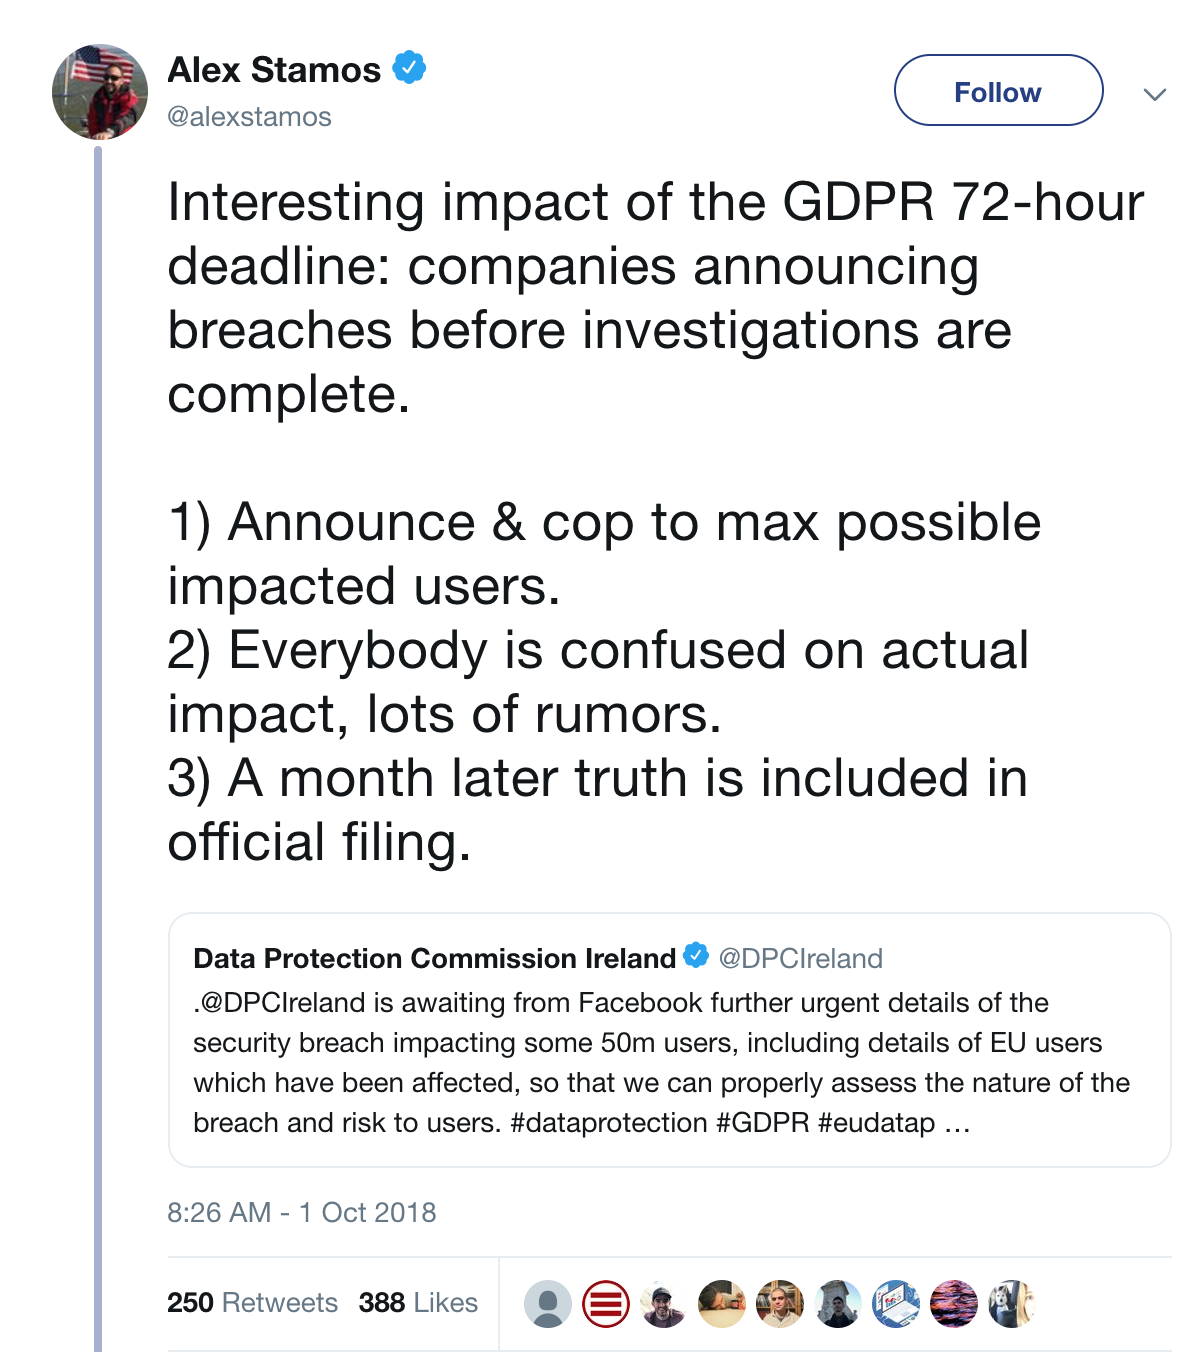 Alex Stamos comments on GDPR impact